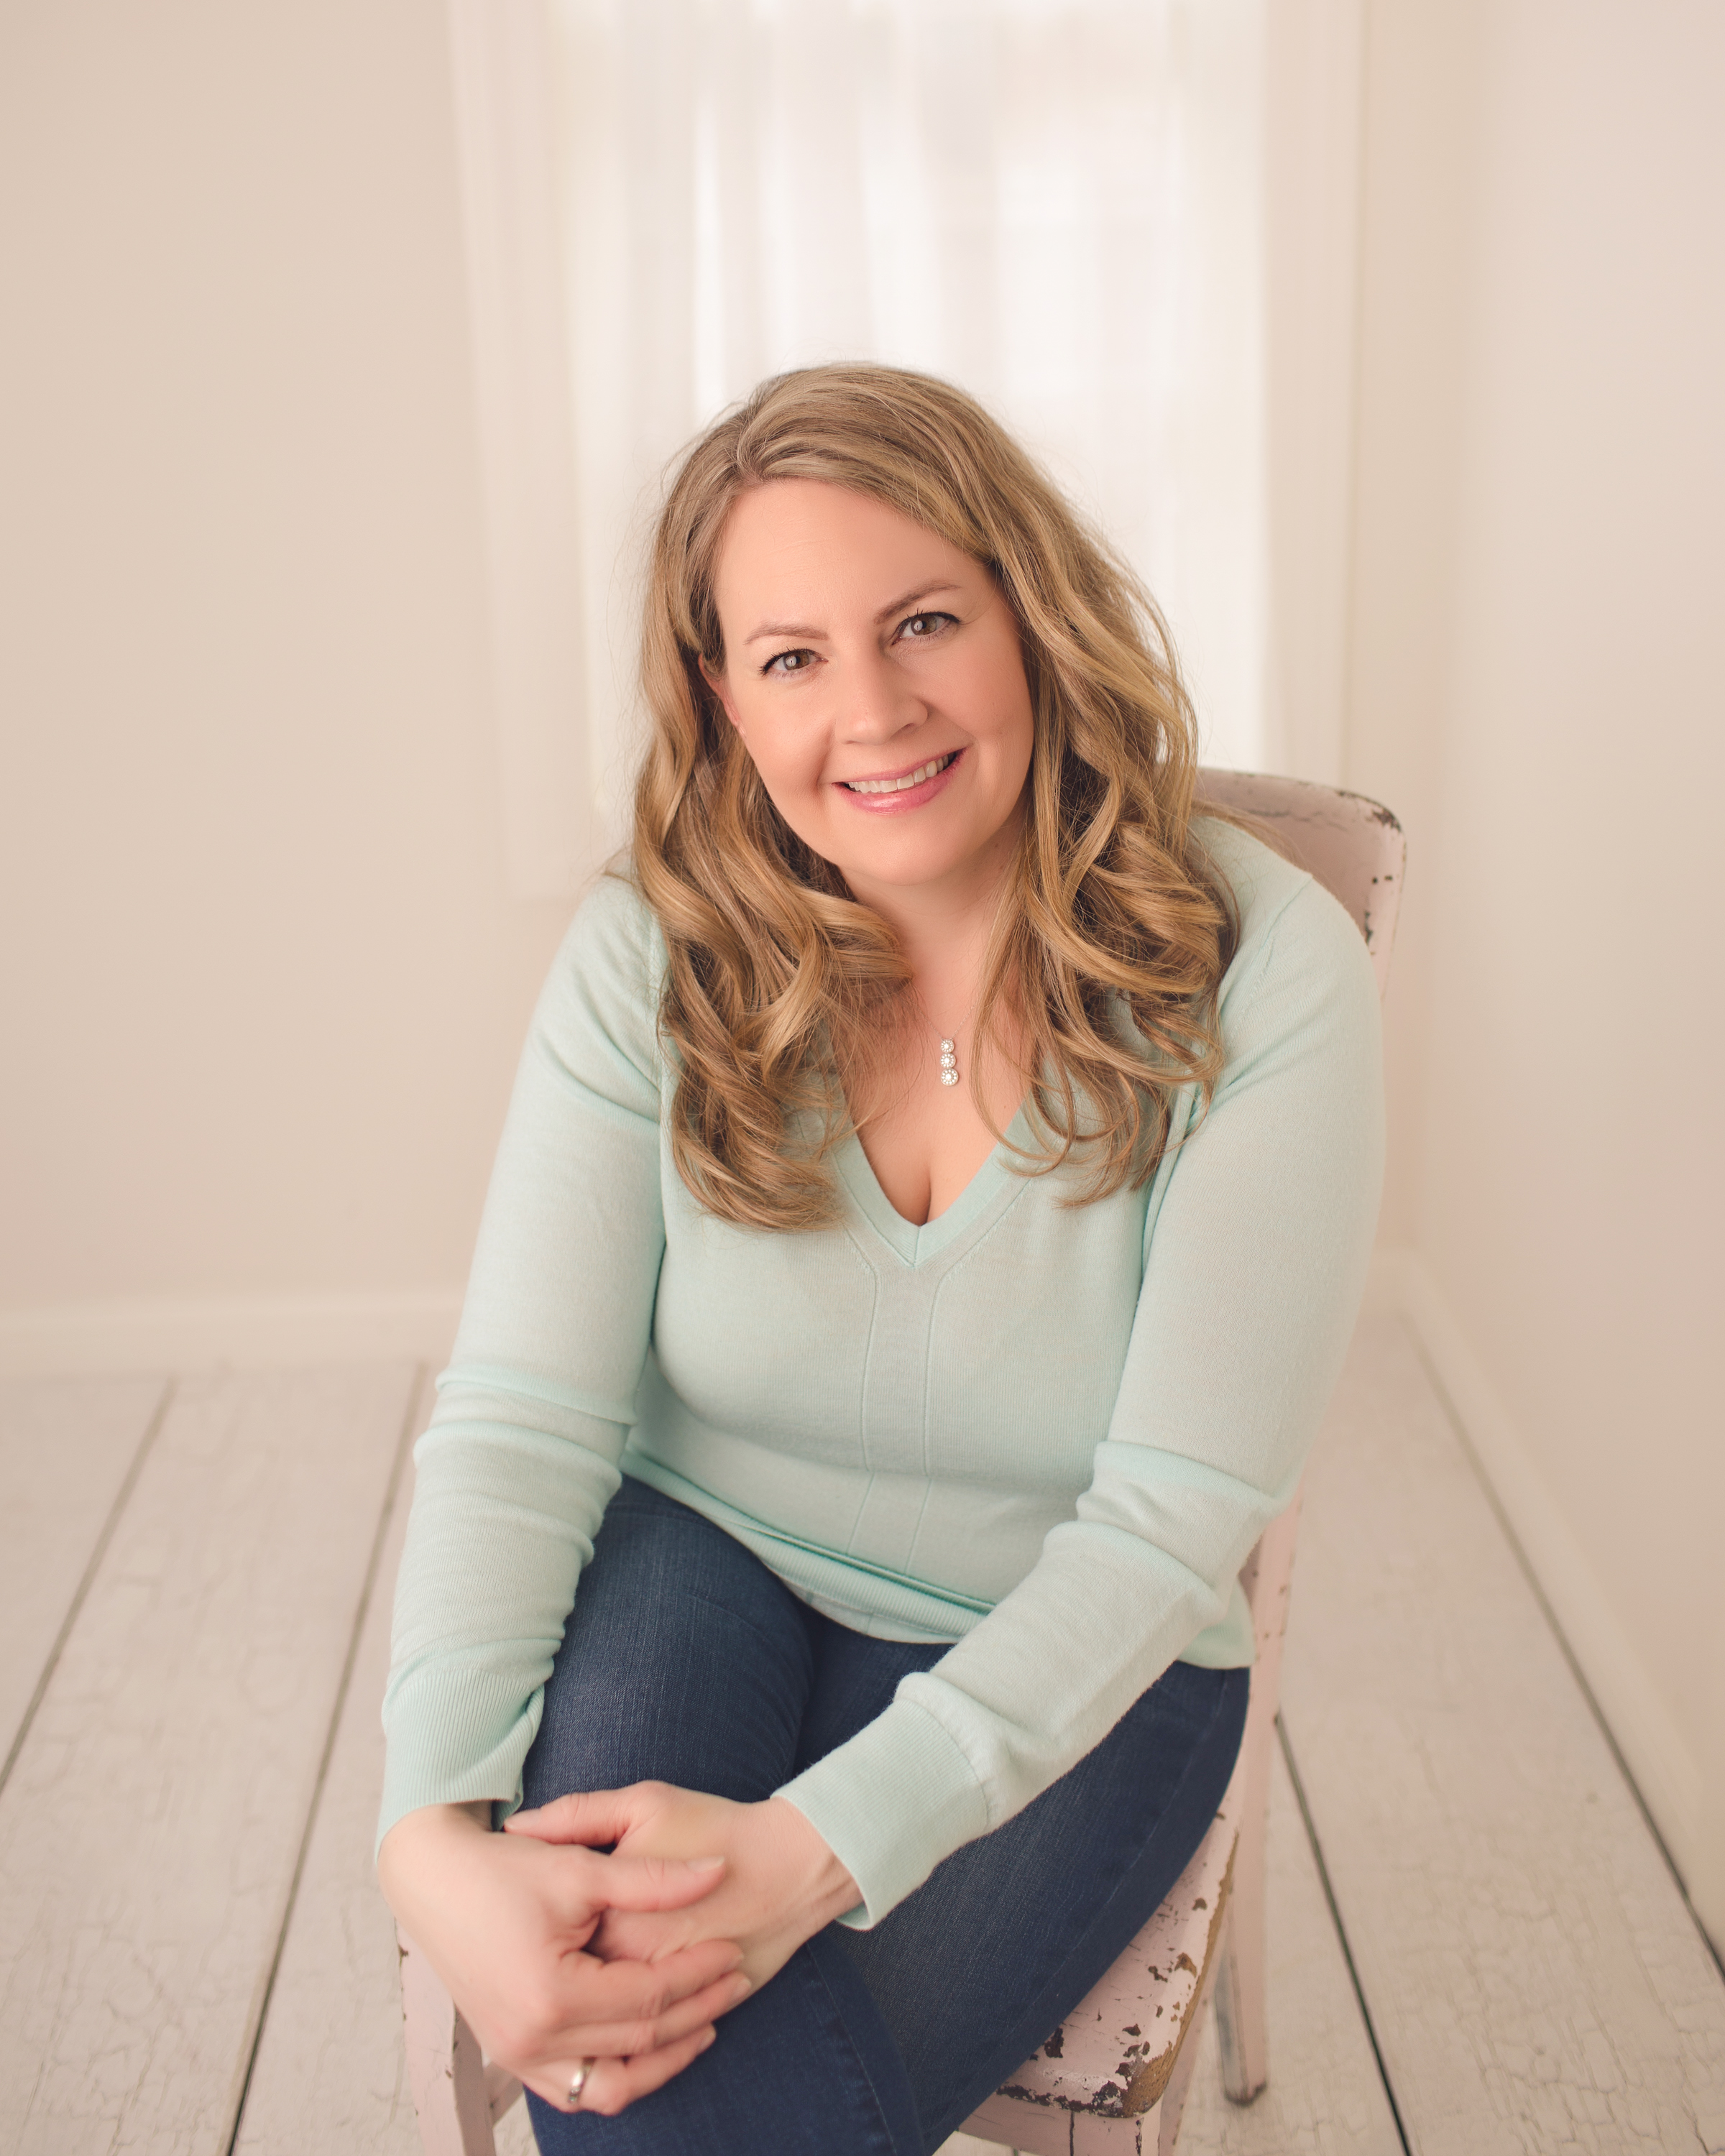 """Today's Guest: Becky """"Clean Mama"""" Rapinchuk - Becky Rapinchuk is known as """"Clean Mama."""" She's a cleaning and homekeeping expert, business owner and author of the books, Clean Mama's Guide to a Healthy Home, 2019, Simply Clean, 2017, The Organically Clean Home, 2014. She's also a wife and mom to three, a business owner, and a former art teacher. Her blog helps people discover new ways to do the mundane tasks of homekeeping and to bring a little more fun into the process. She's been featured everywhere from Oprah Magazine to Good Housekeeping and more."""